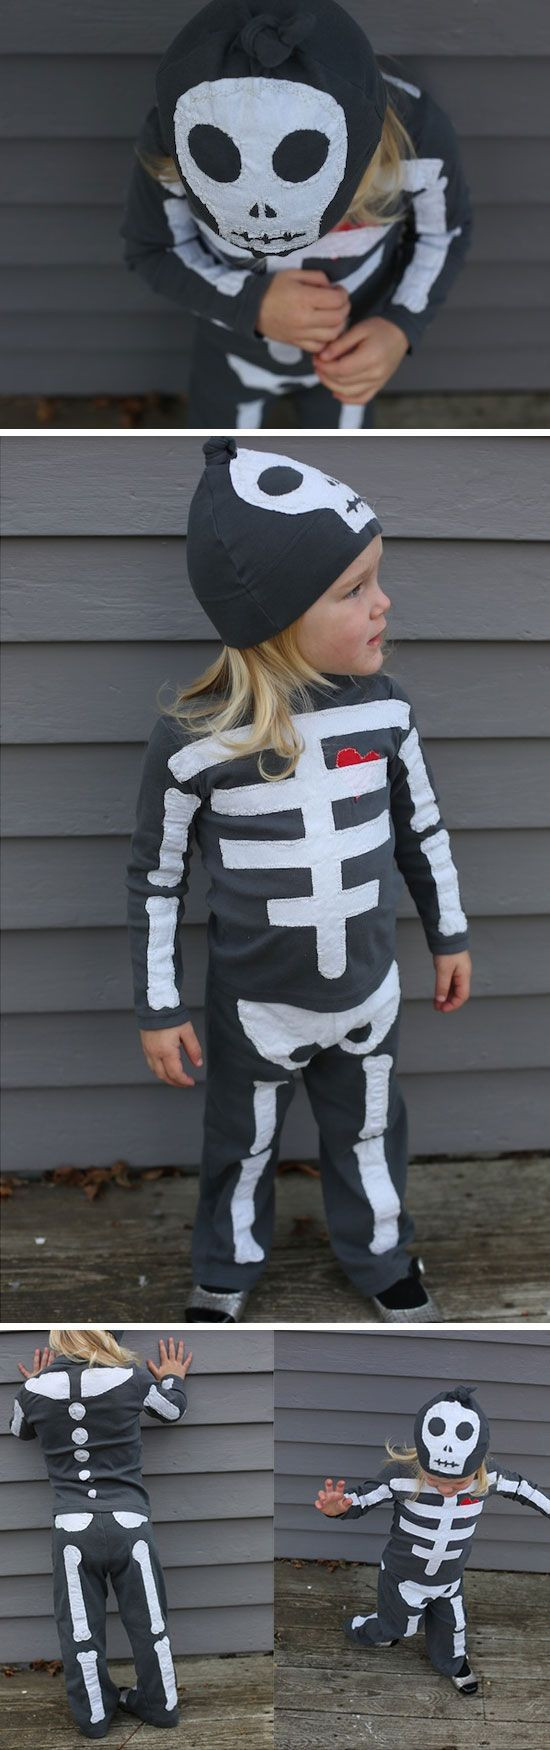 Best ideas about DIY Kids Skeleton Costume . Save or Pin 25 best ideas about Skeleton Costumes on Pinterest Now.